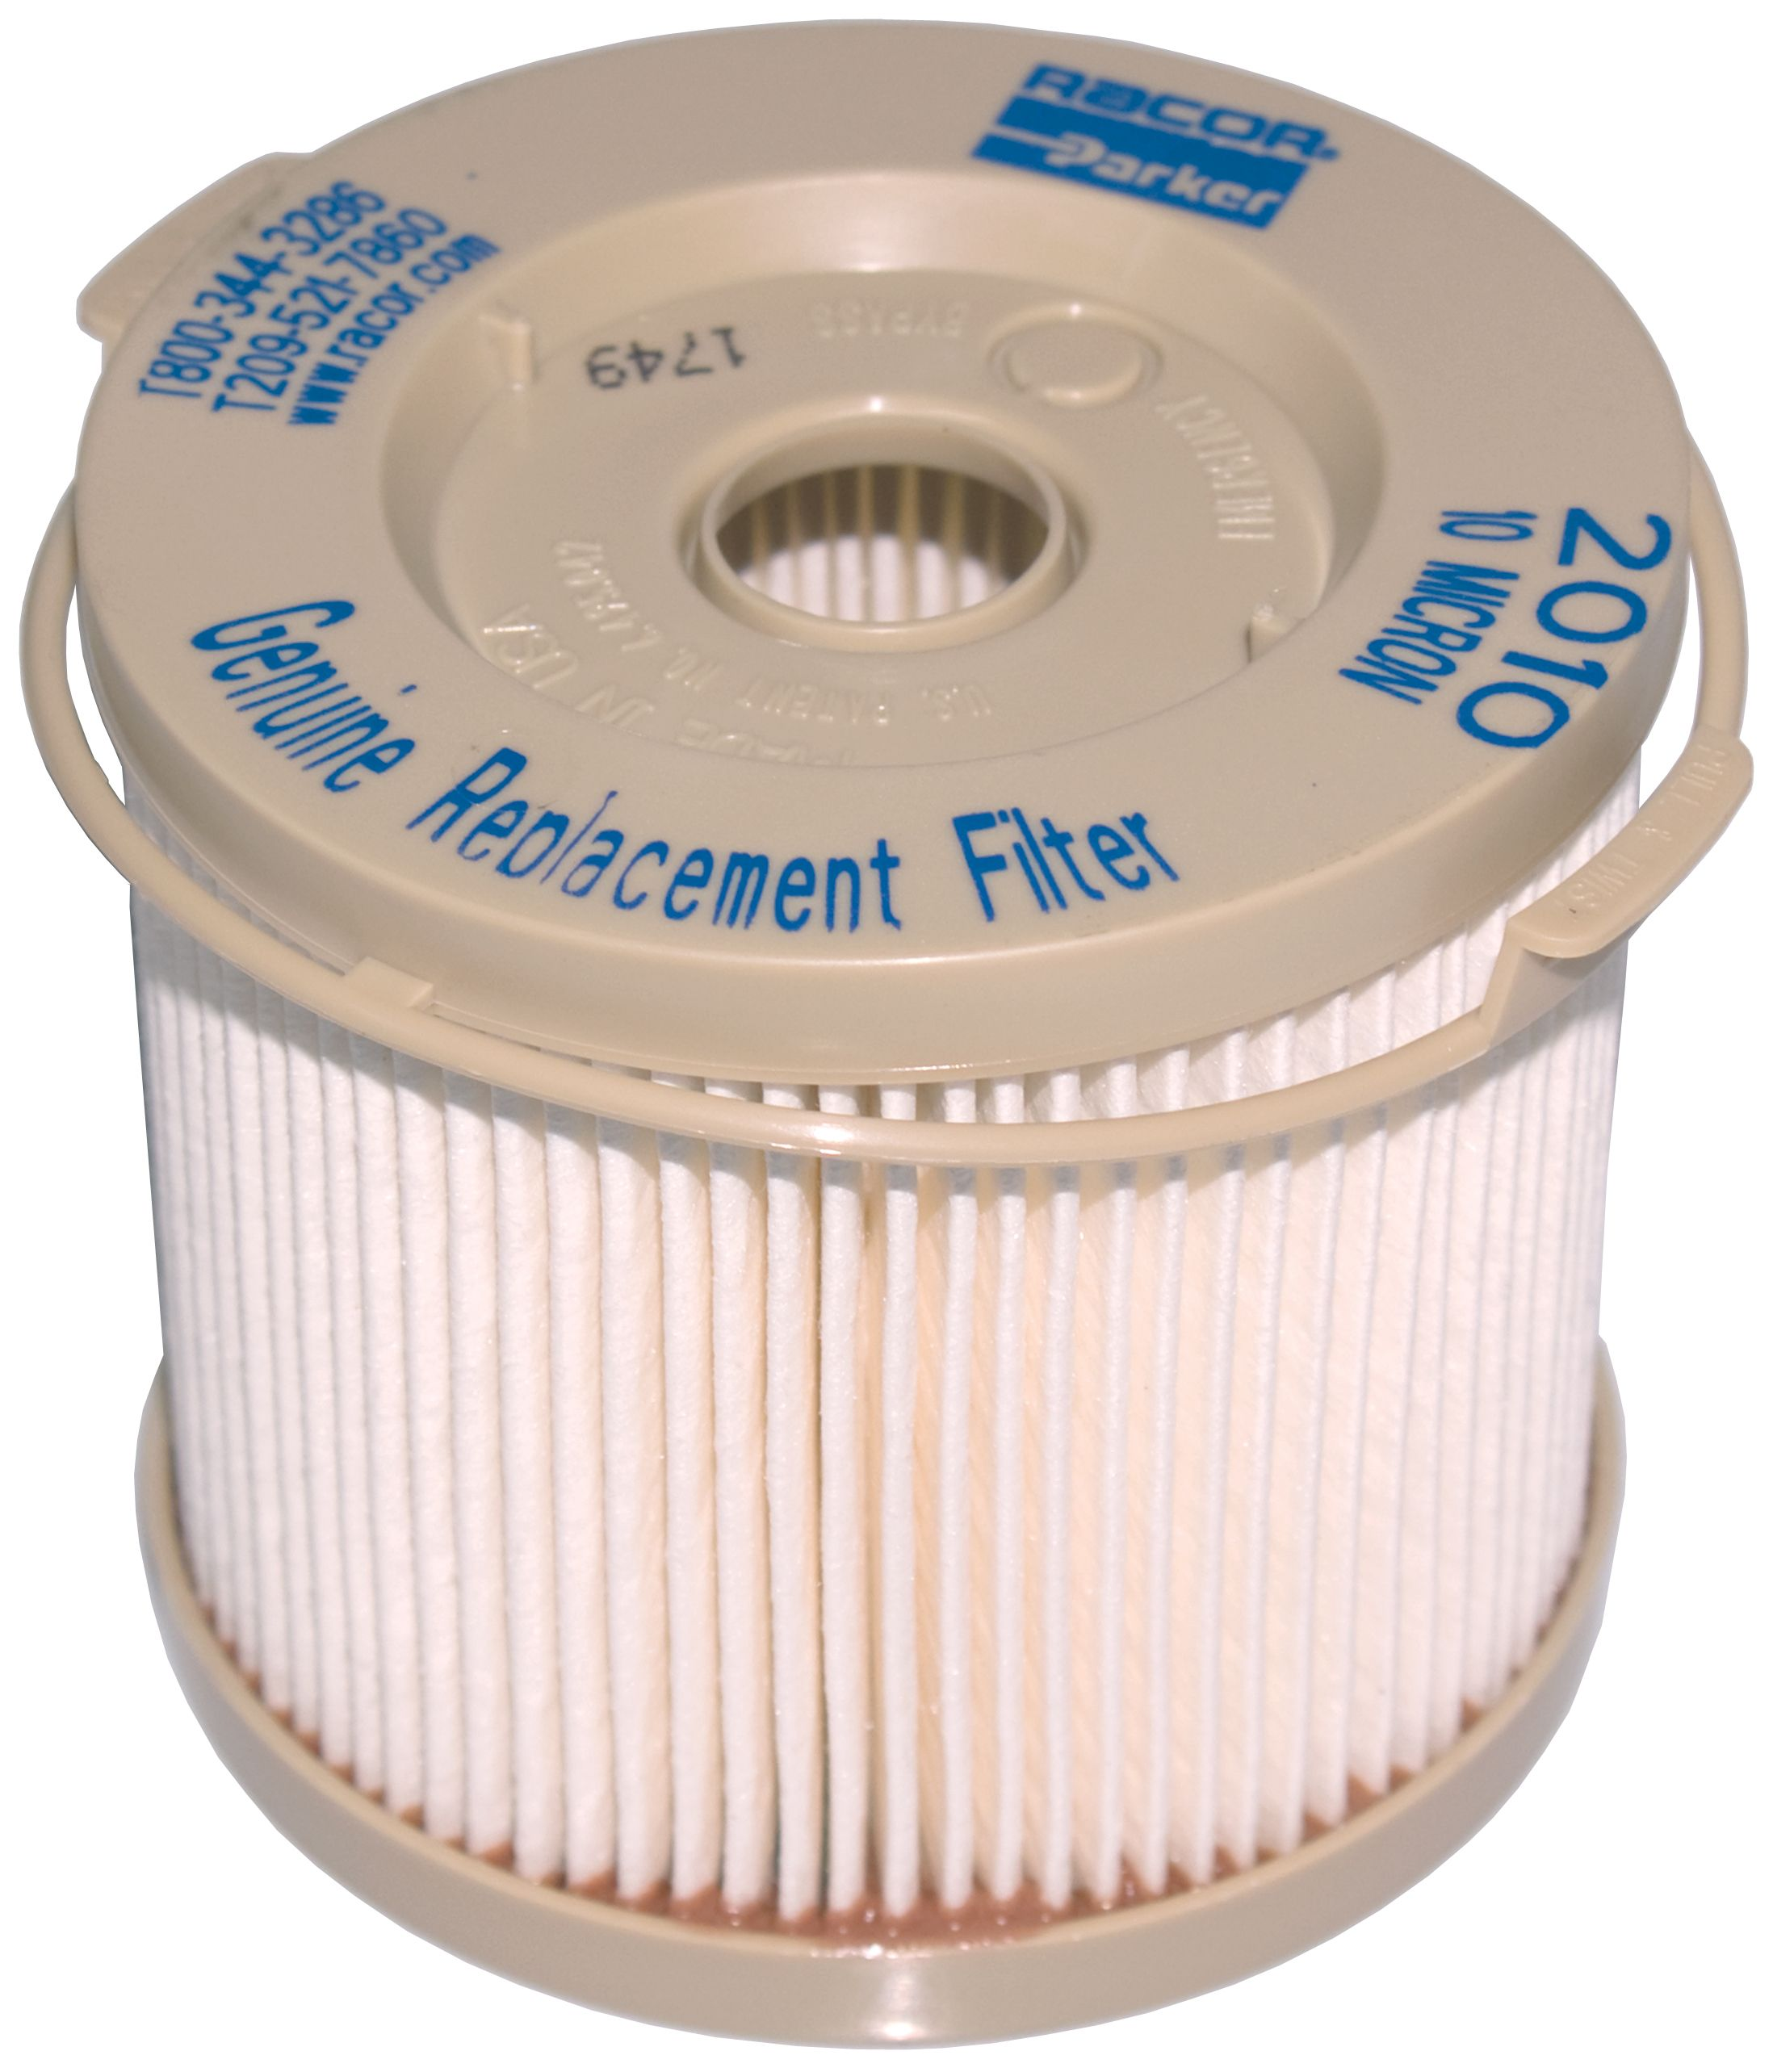 RACOR FUEL FILTER TURBINE SERIES REPLACEMENT 2010TMOR 10 MICRON BLUE 3 PAC SALE